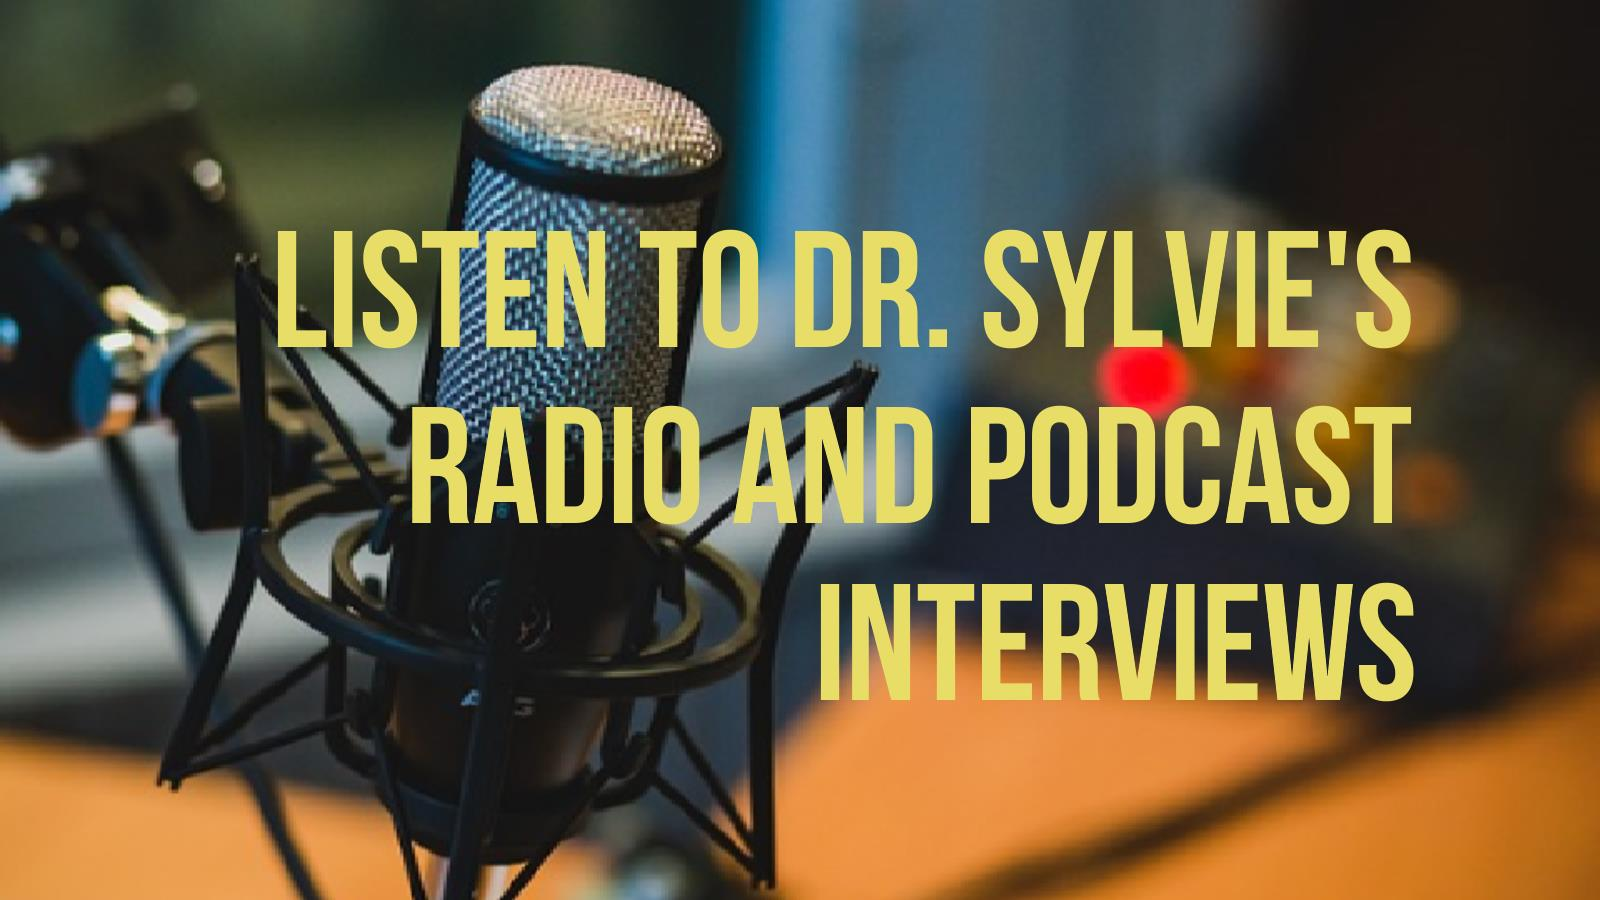 Dr. Sylvies's Podcast Interviews